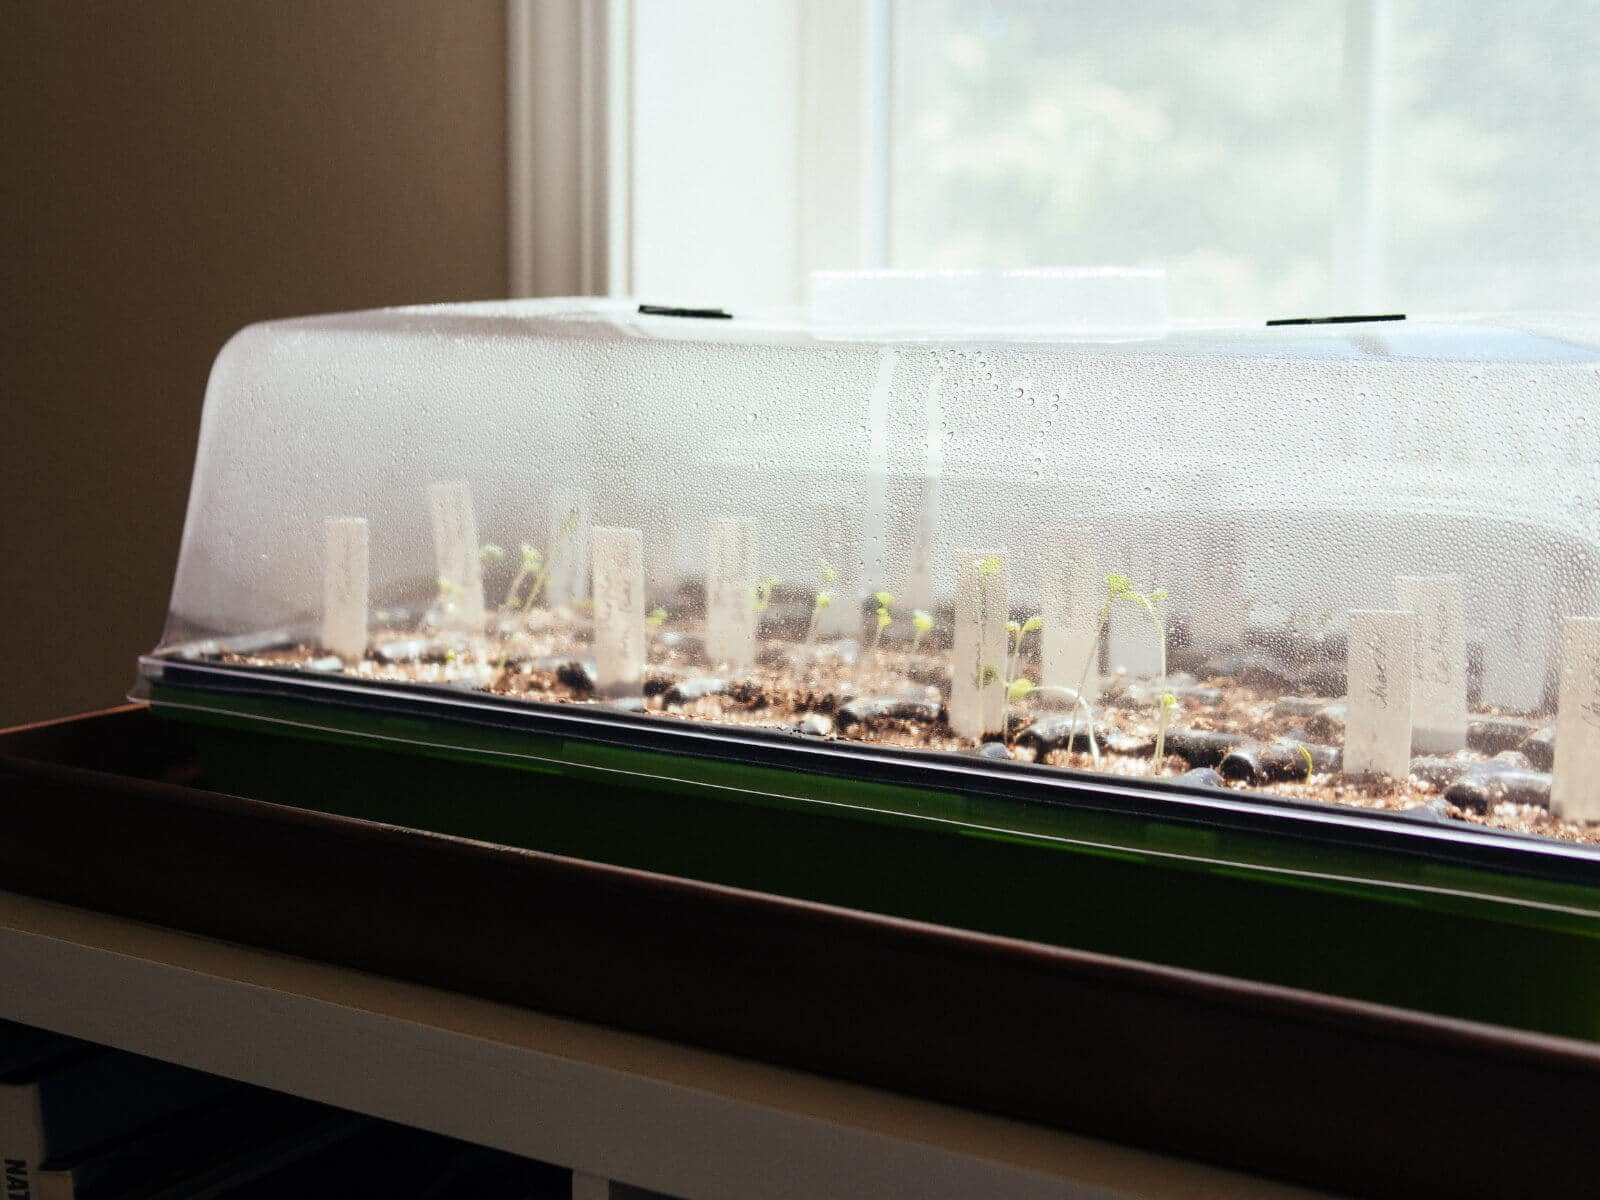 Seedlings gaining warmth from their mini greenhouse by the window